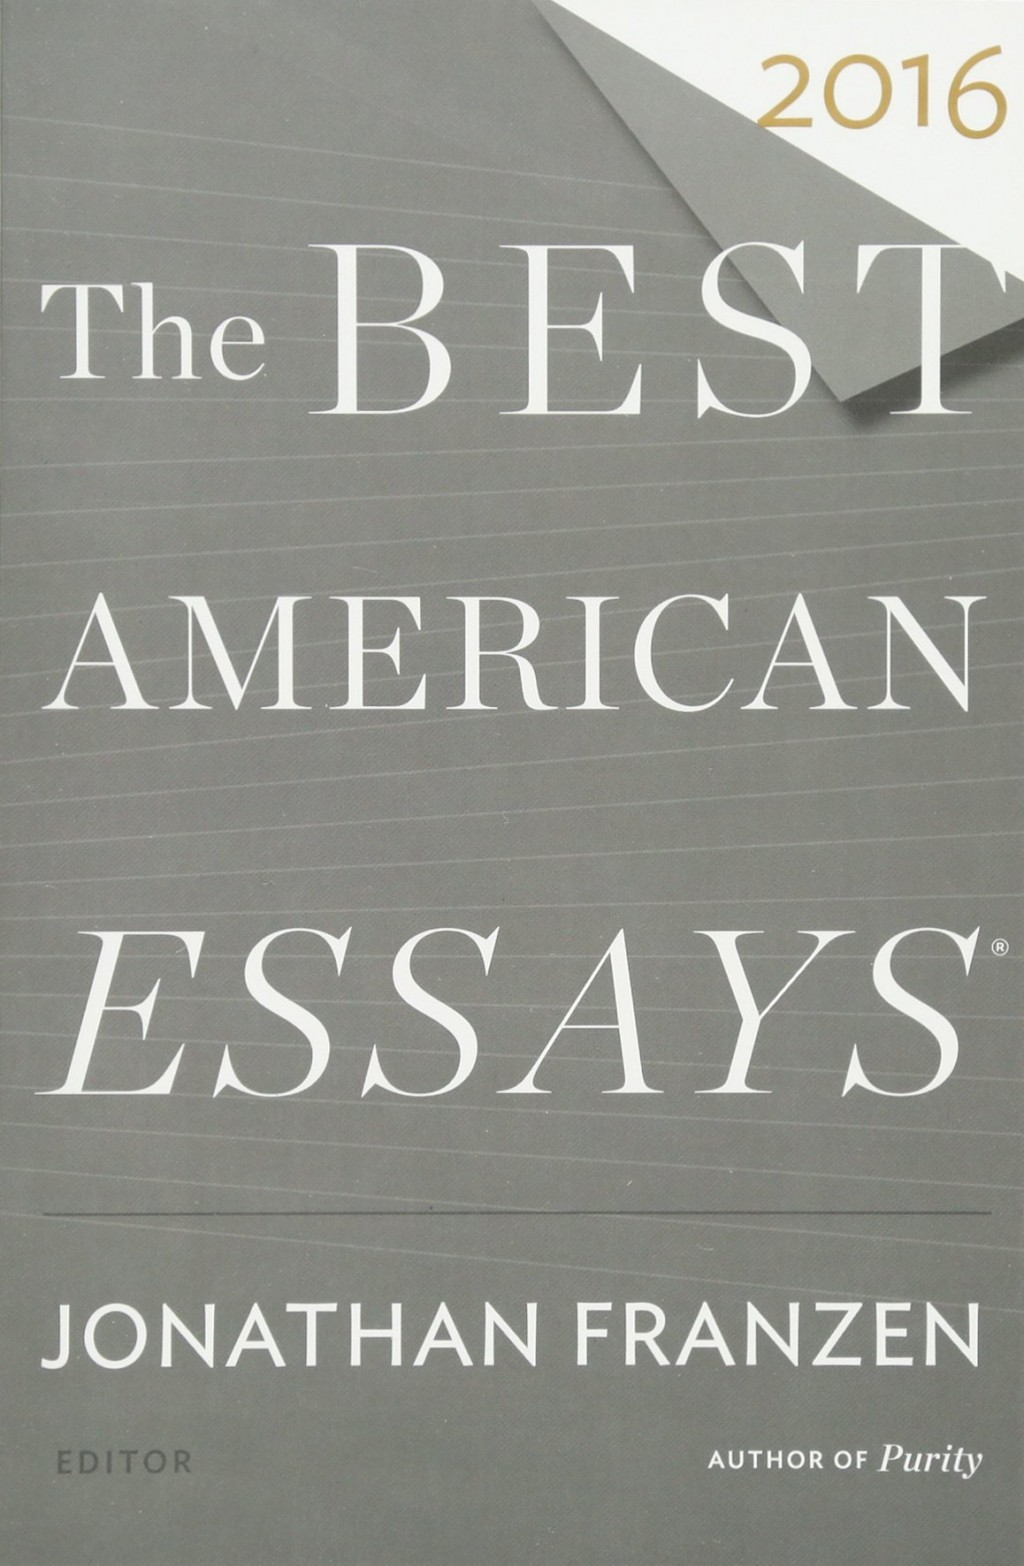 005 Best American Essays 71a6bhsgsdl Essay Striking 2017 Pdf Submissions 2019 Of The Century Table Contents Large